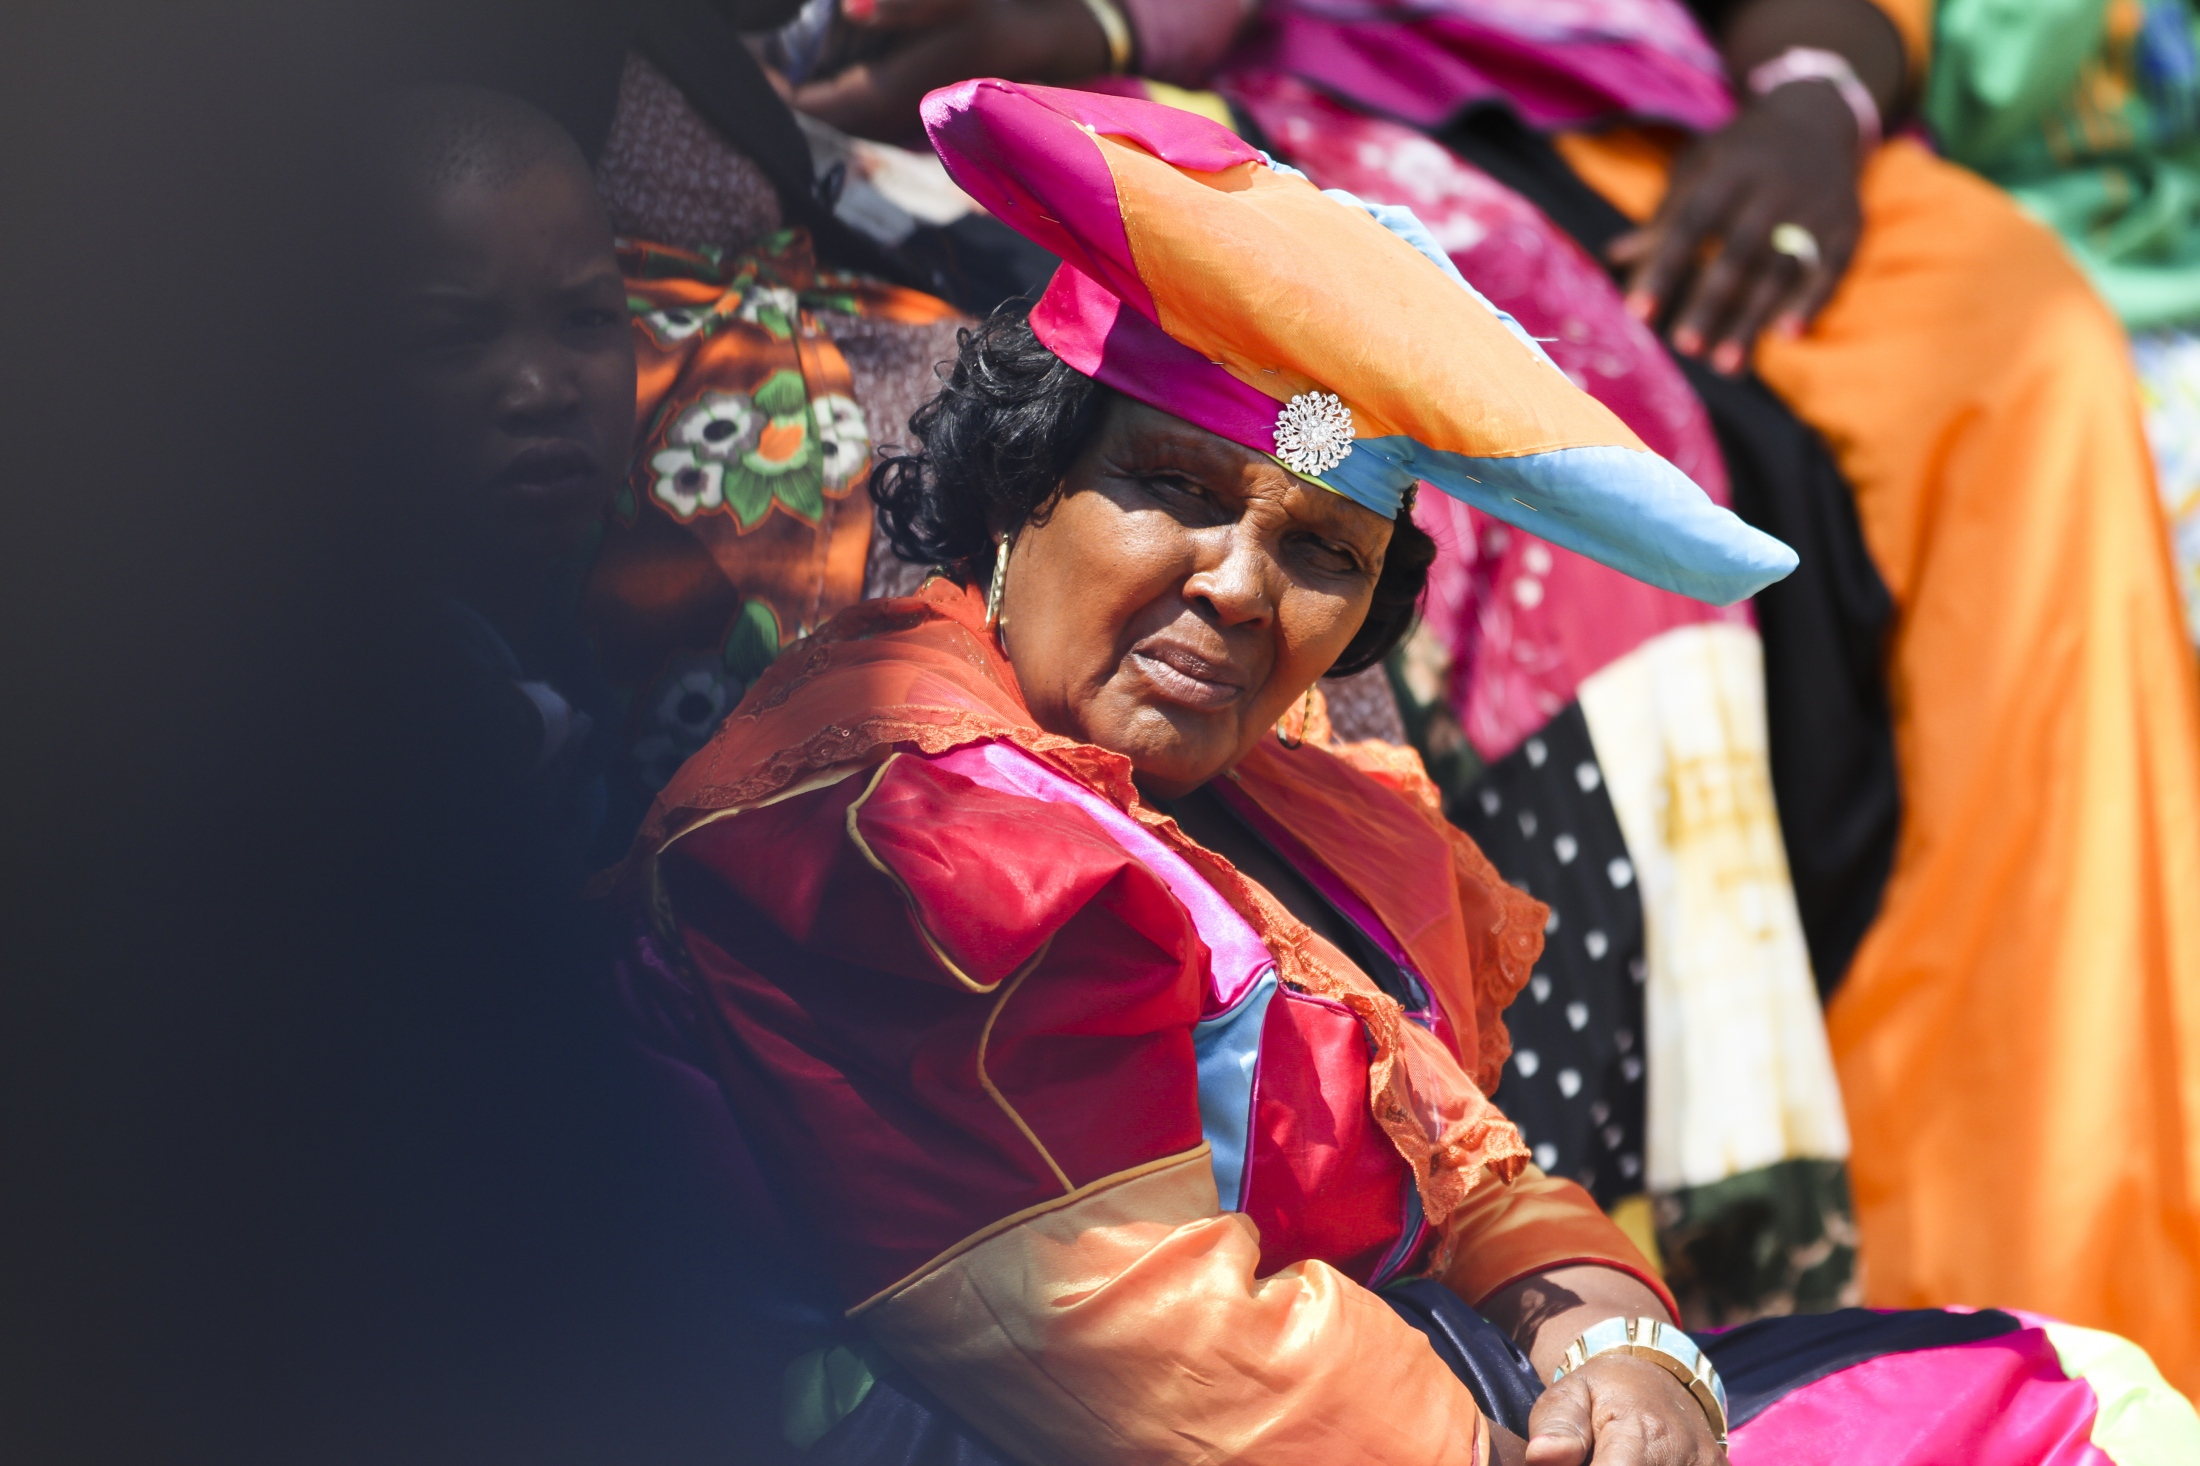 A herero woman wearing her colorful traditional attire. The most distinctive feature of Herero women's dress is their horizontal horned headdress, the otjikaiva, which is a symbol of respect, worn to pay homage to the cows that have historically sustained the Herero.